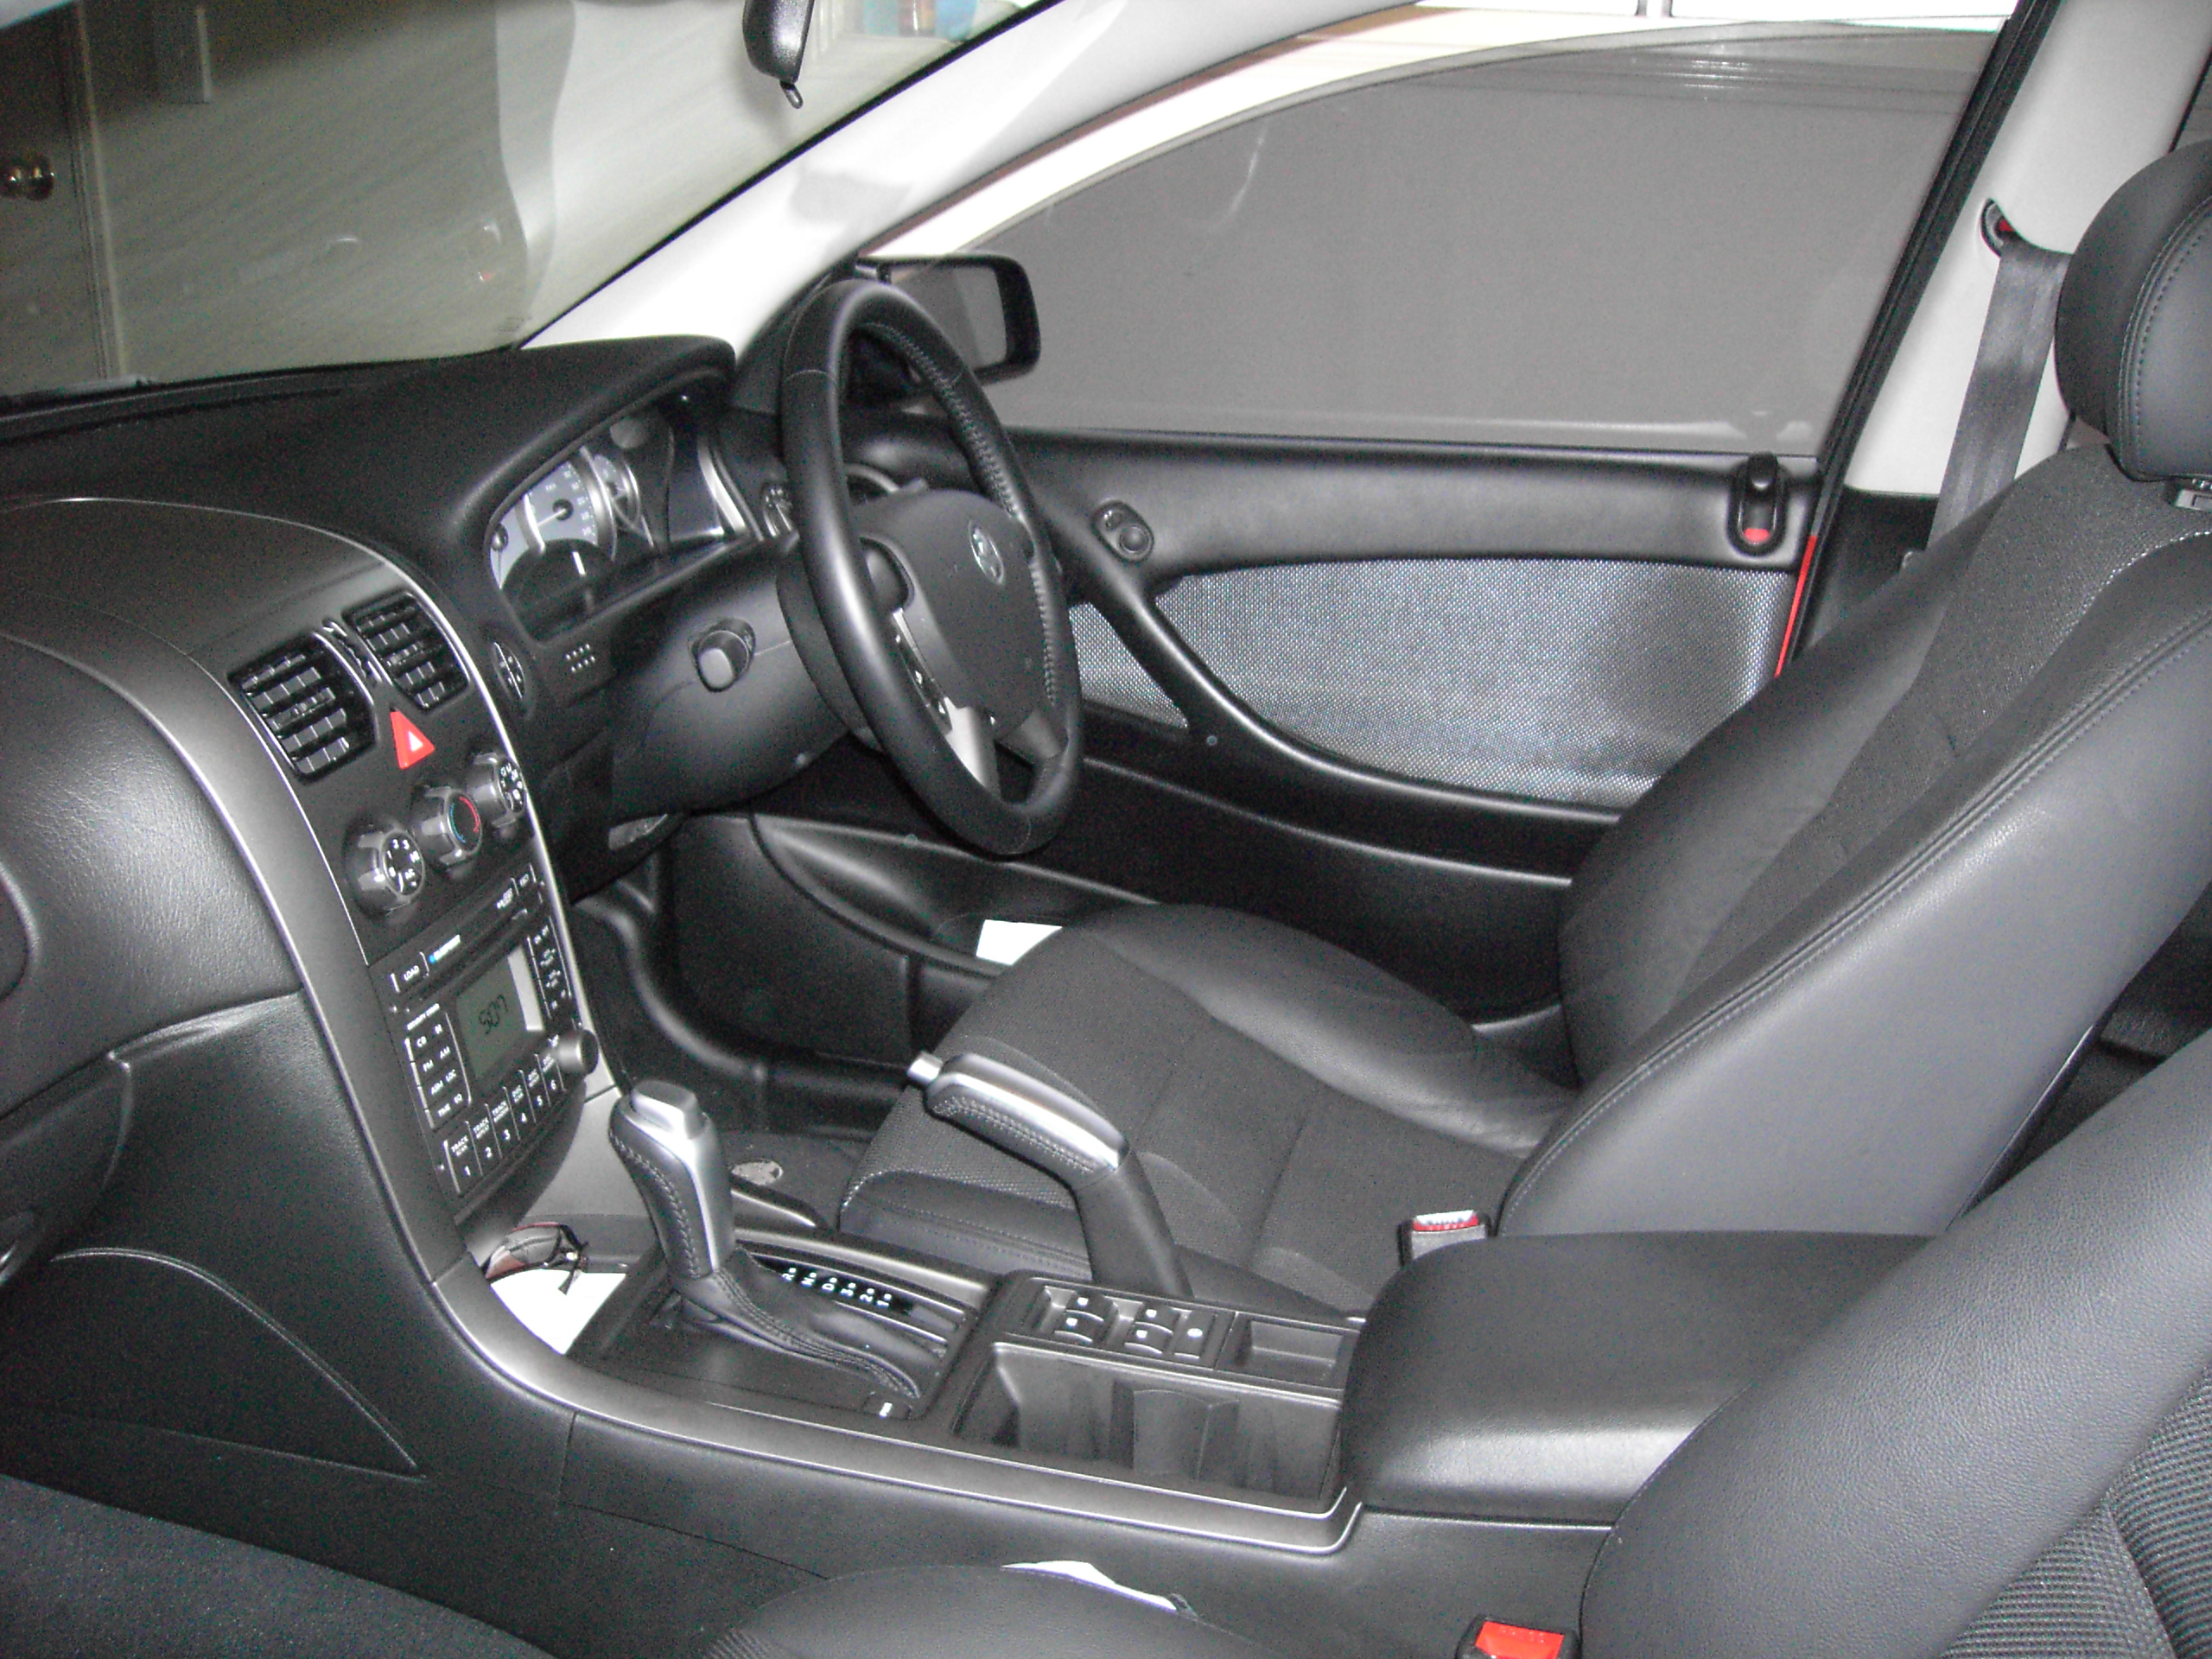 holden commodore (vt) 2005 images #3